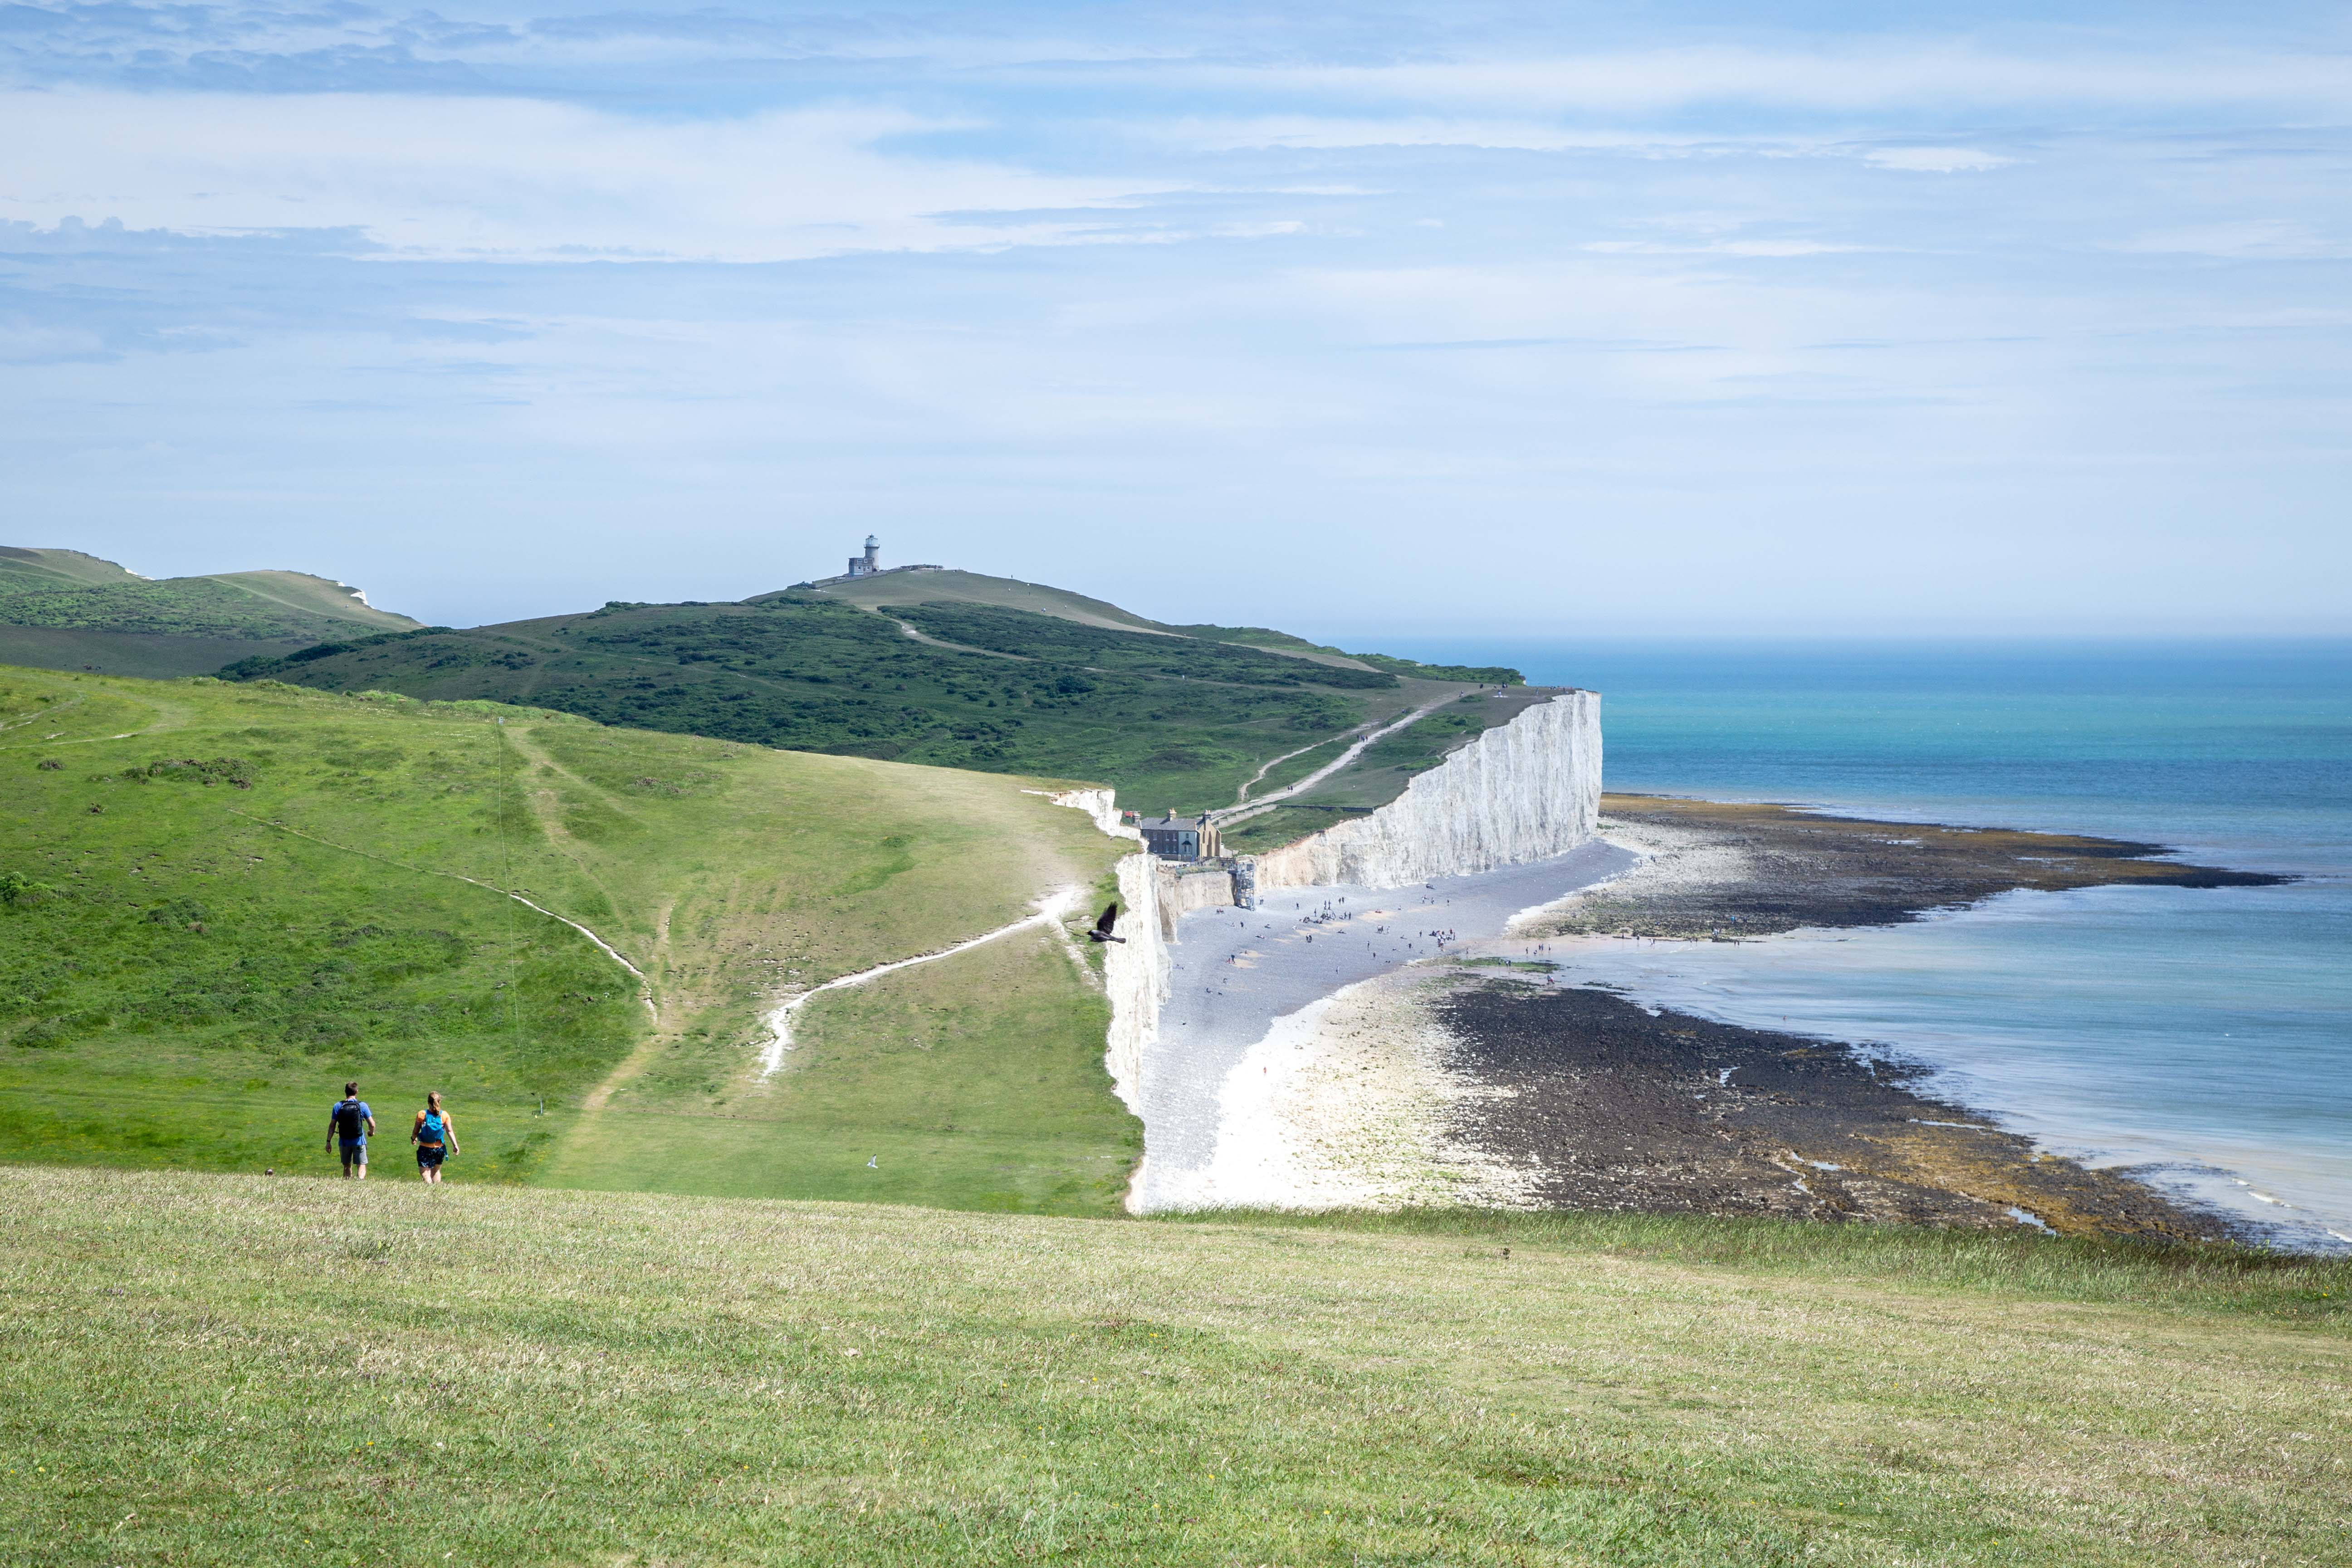 Seven Sisters - Seaford to Birling Gap13